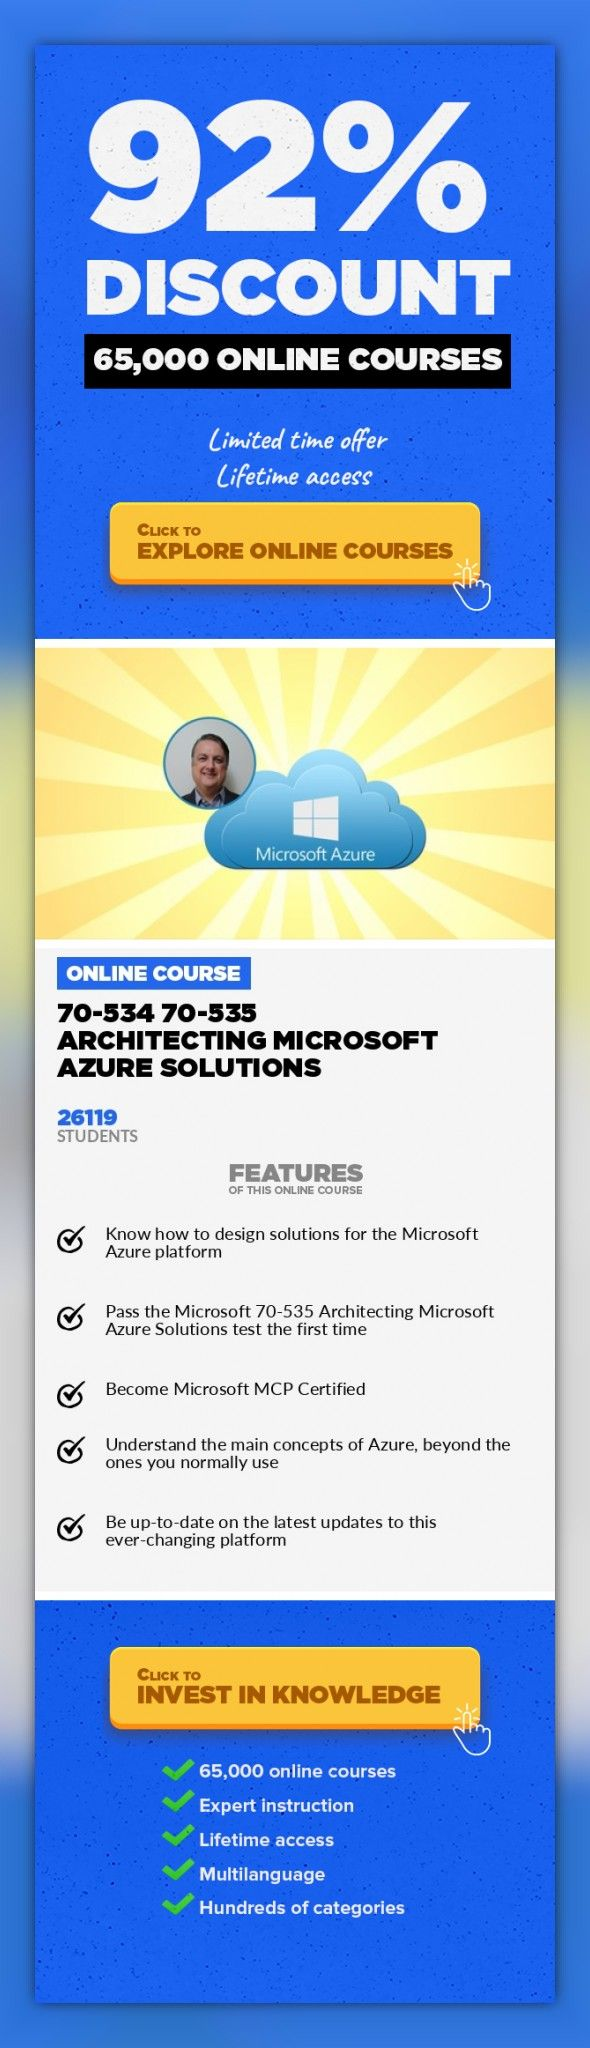 70 534 70 535 Architecting Microsoft Azure Solutions It